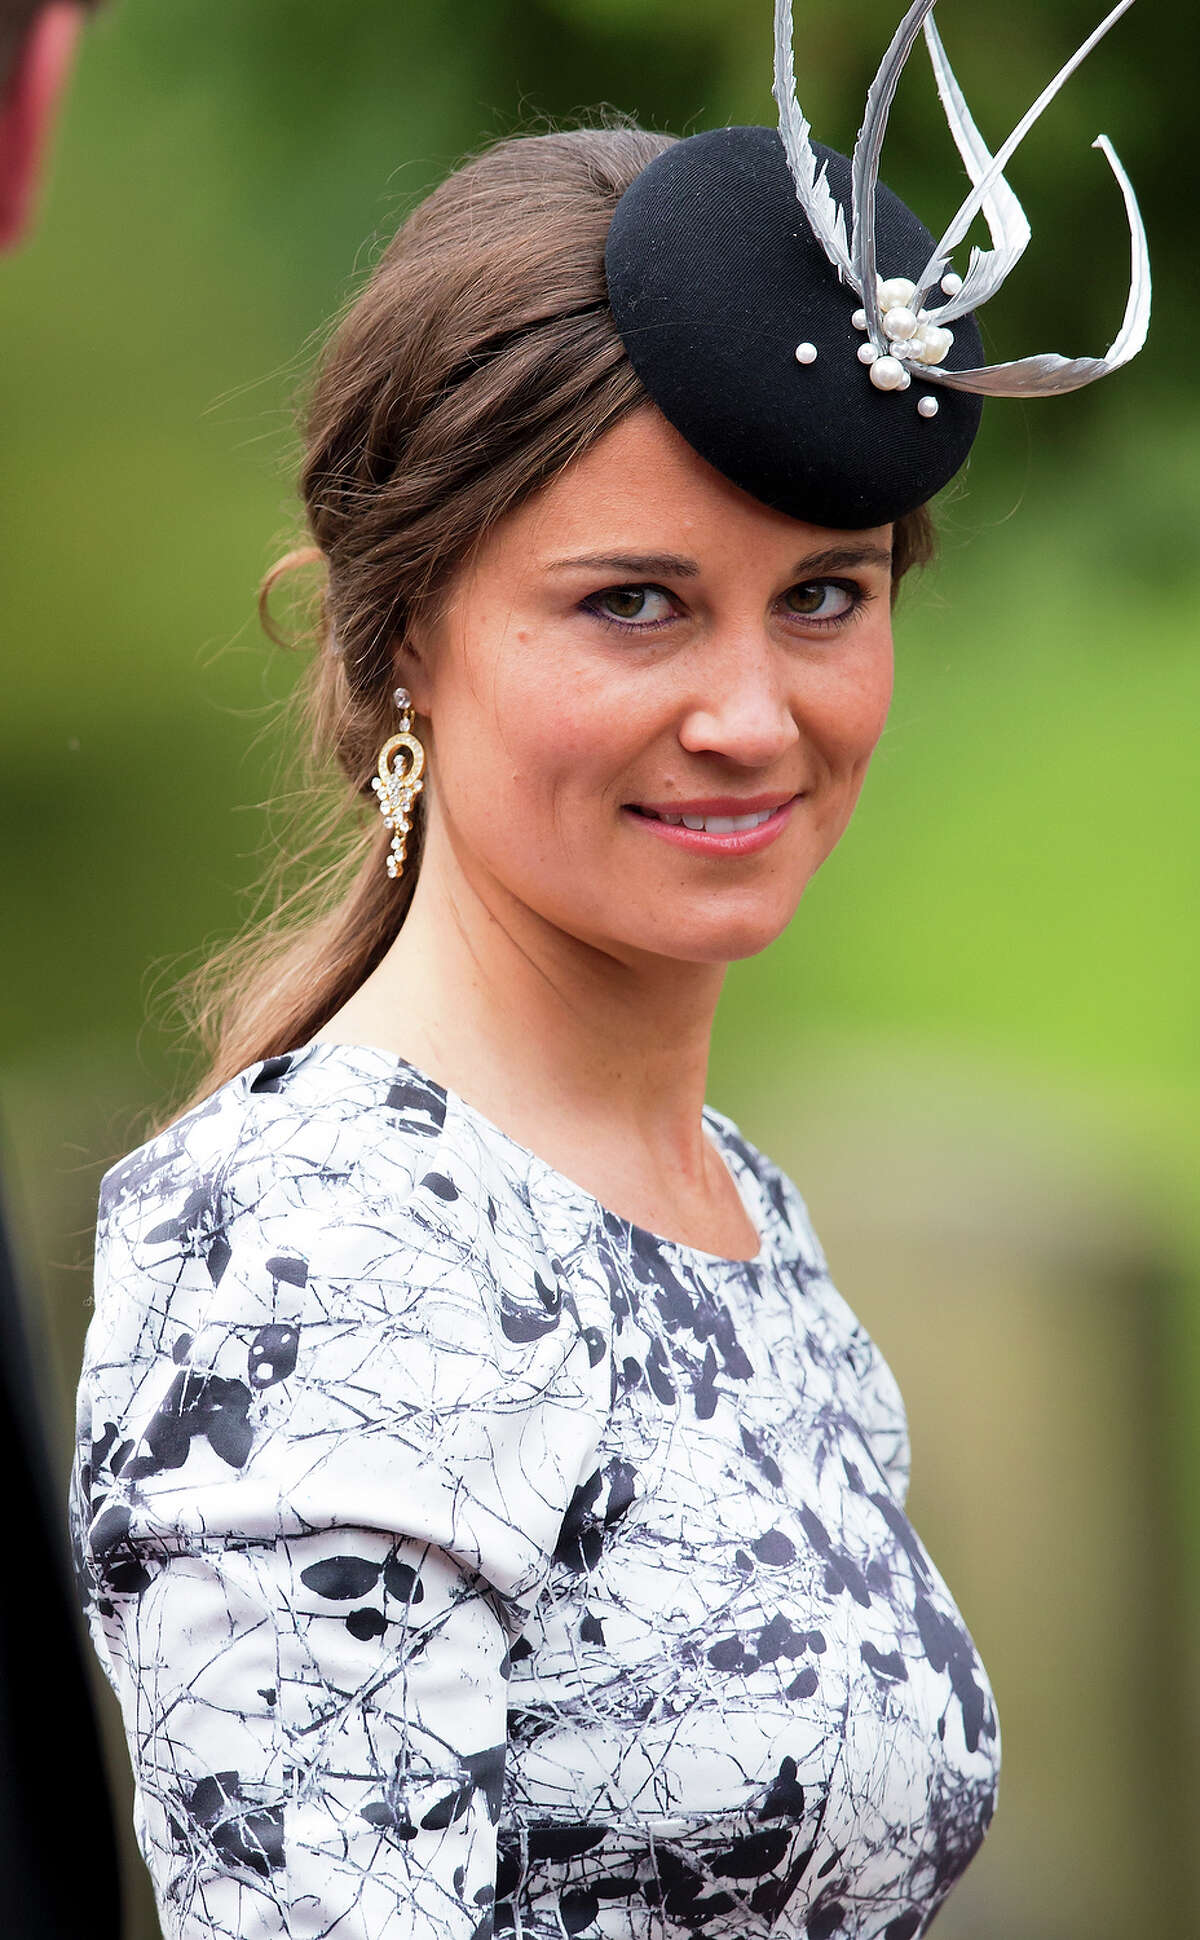 Pippa masters the all-important fascinator hat, which seems to be a must for socialites in England.